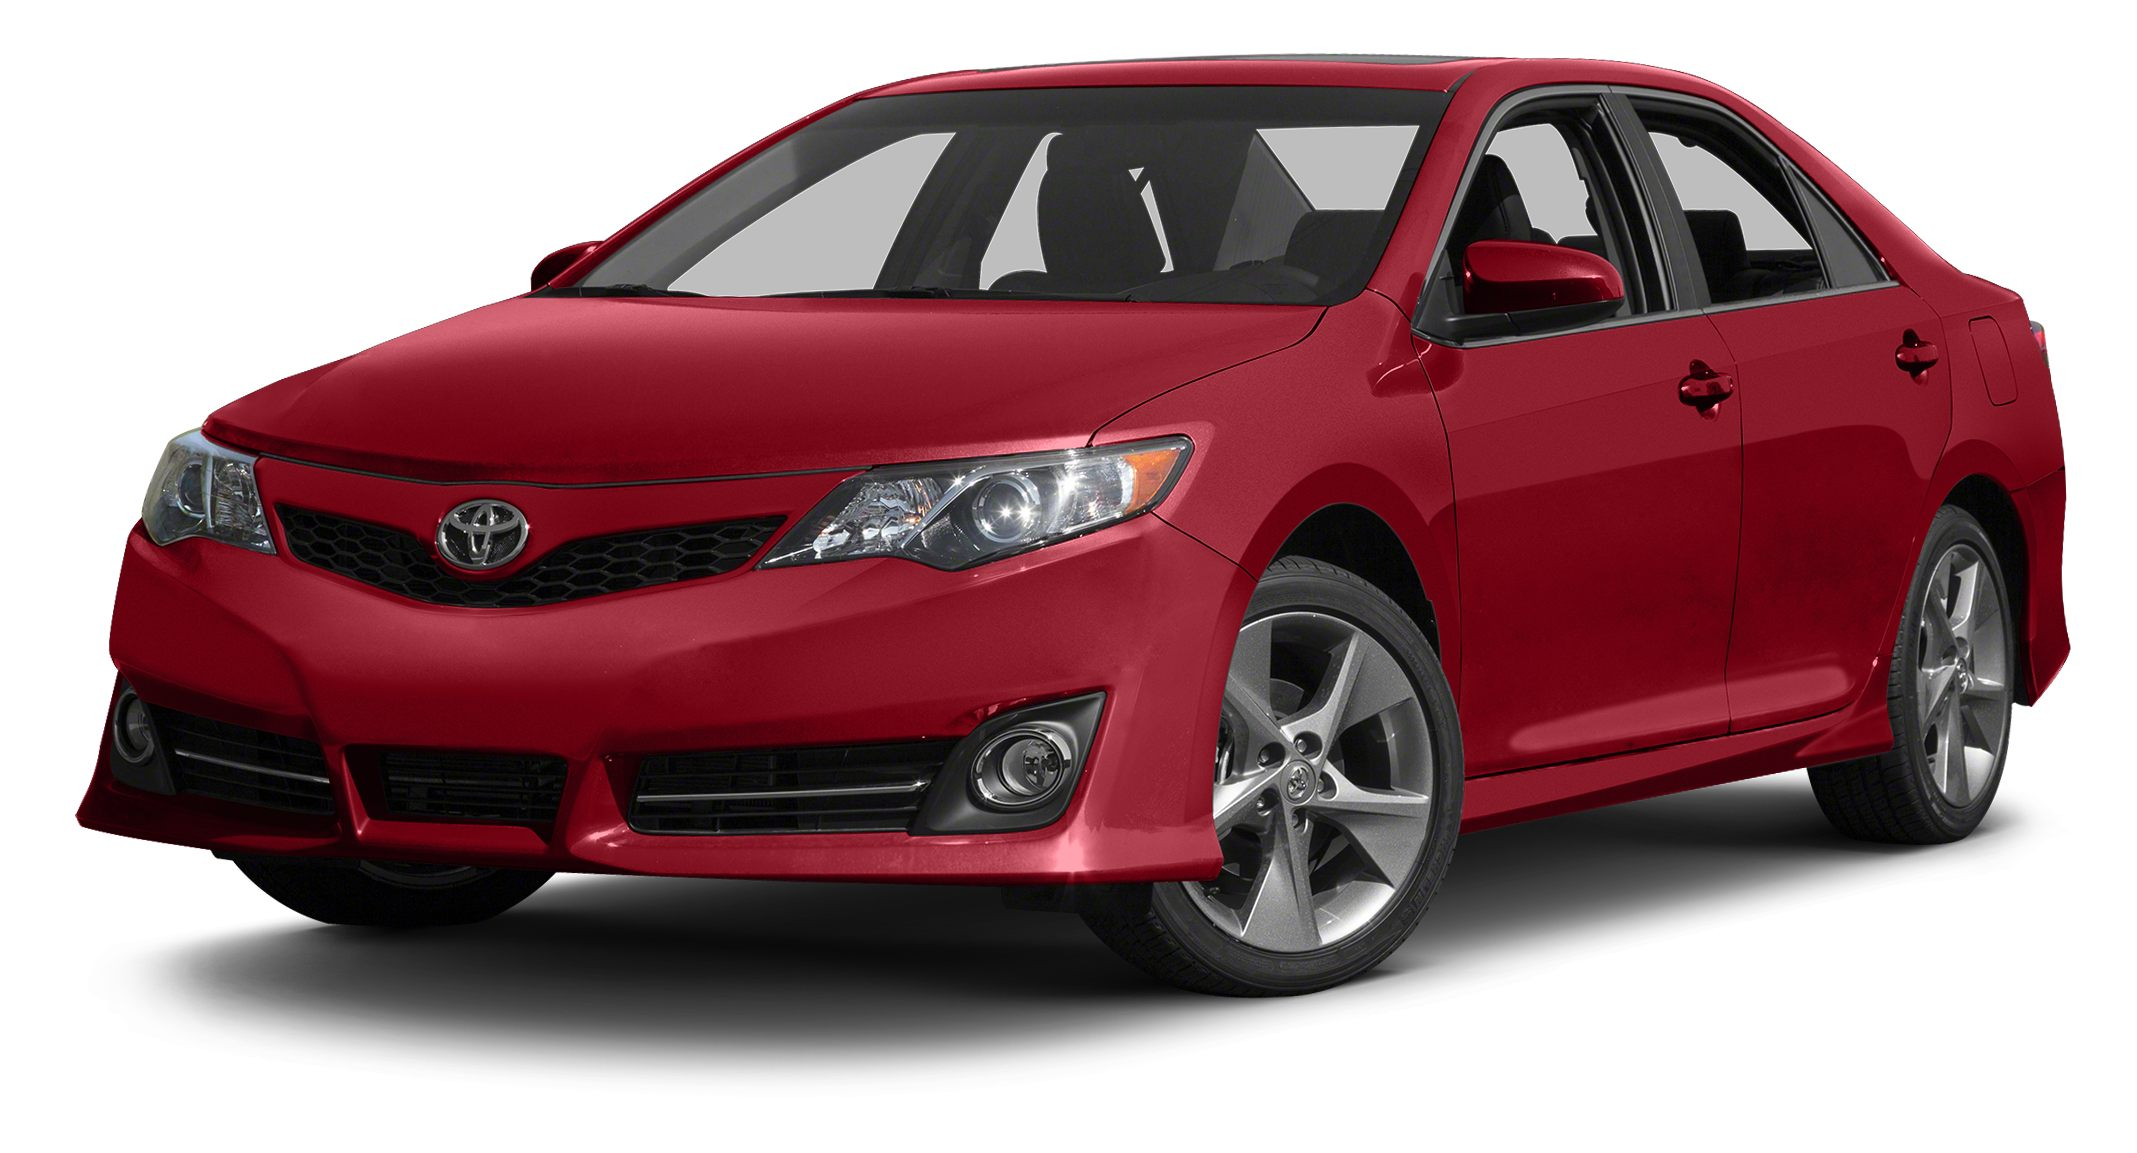 2012 Toyota Camry SE Snatch a bargain on this 2012 Toyota Camry SE while we have it Spacious yet